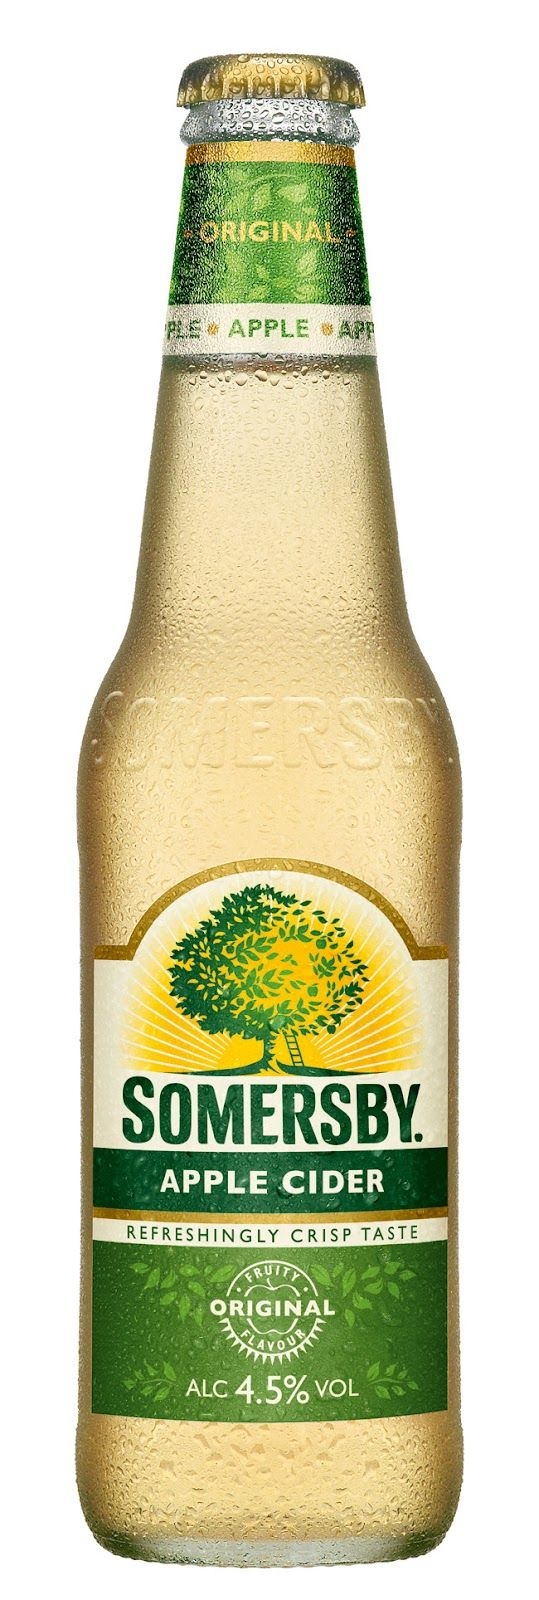 Somersby redesign